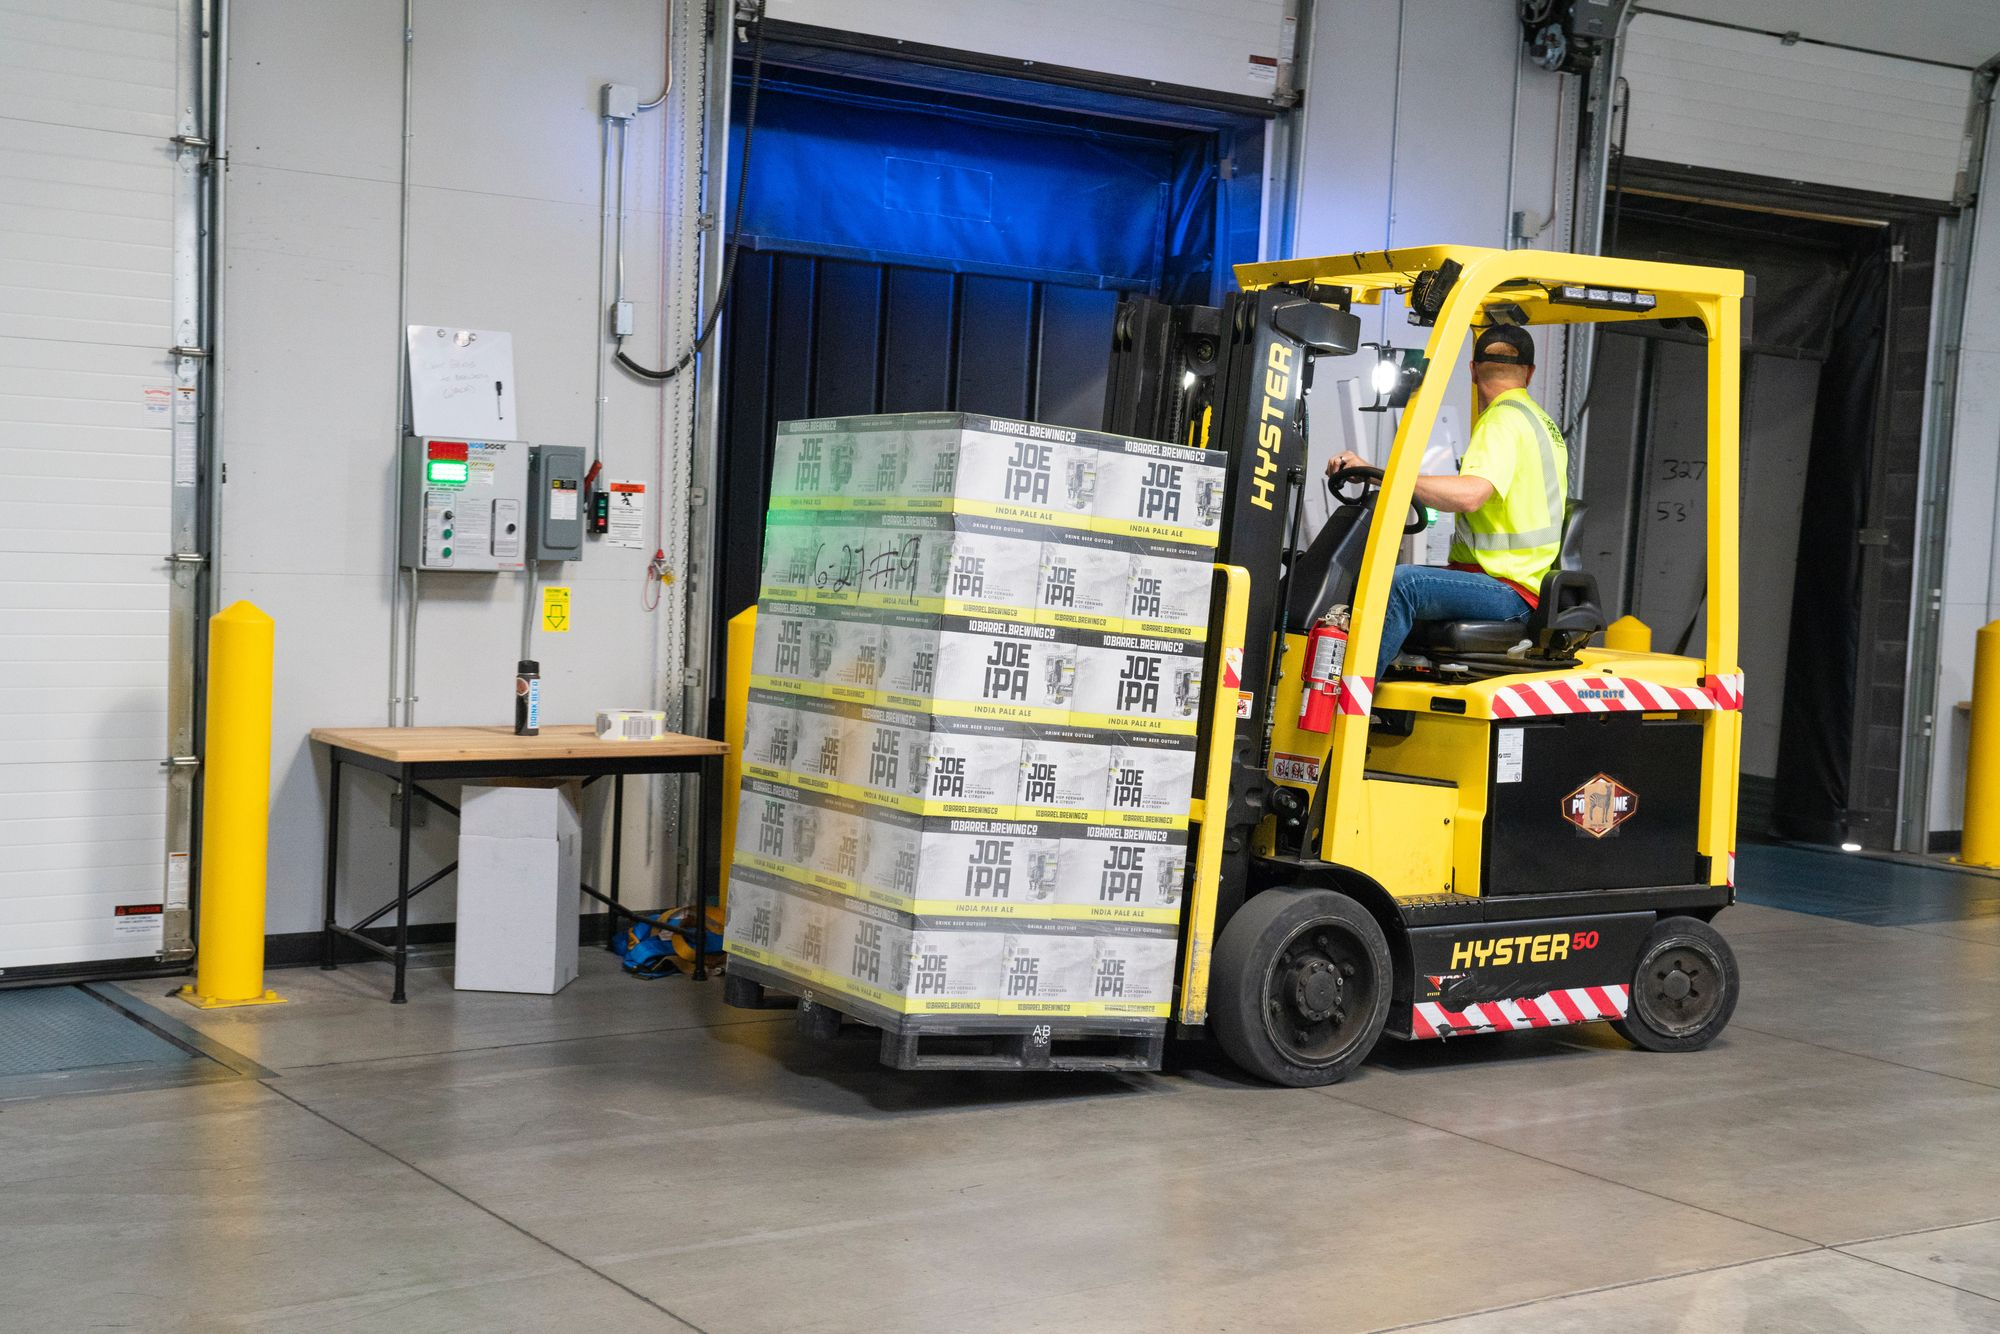 Worker Using Safety Measures to Avoid Damaged Product Returns